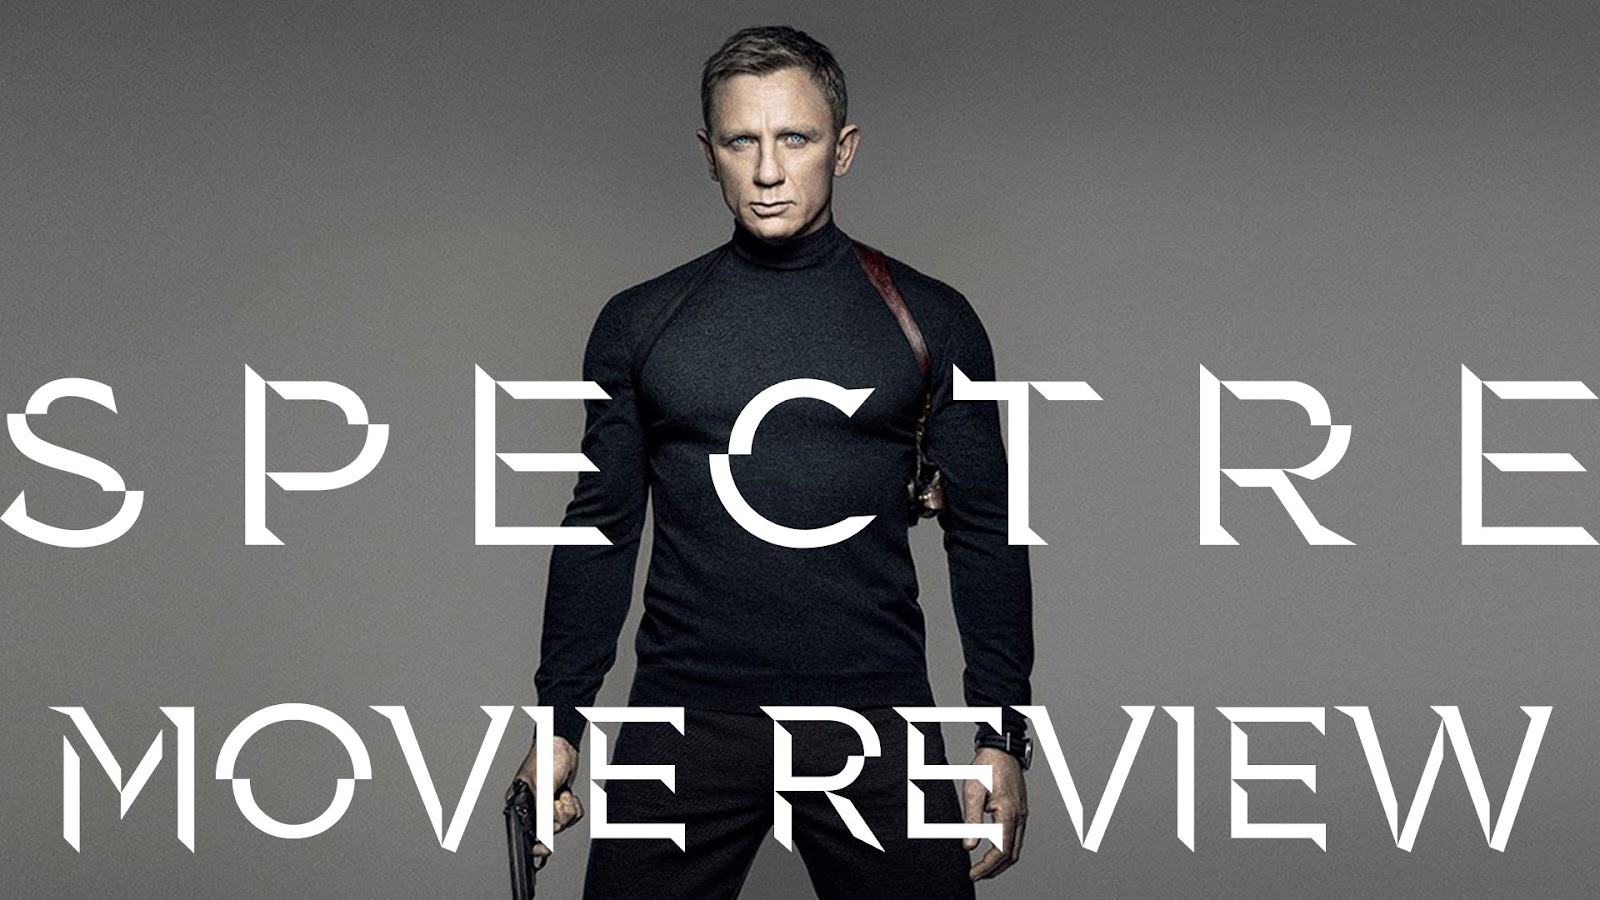 movie review Spectre podcast